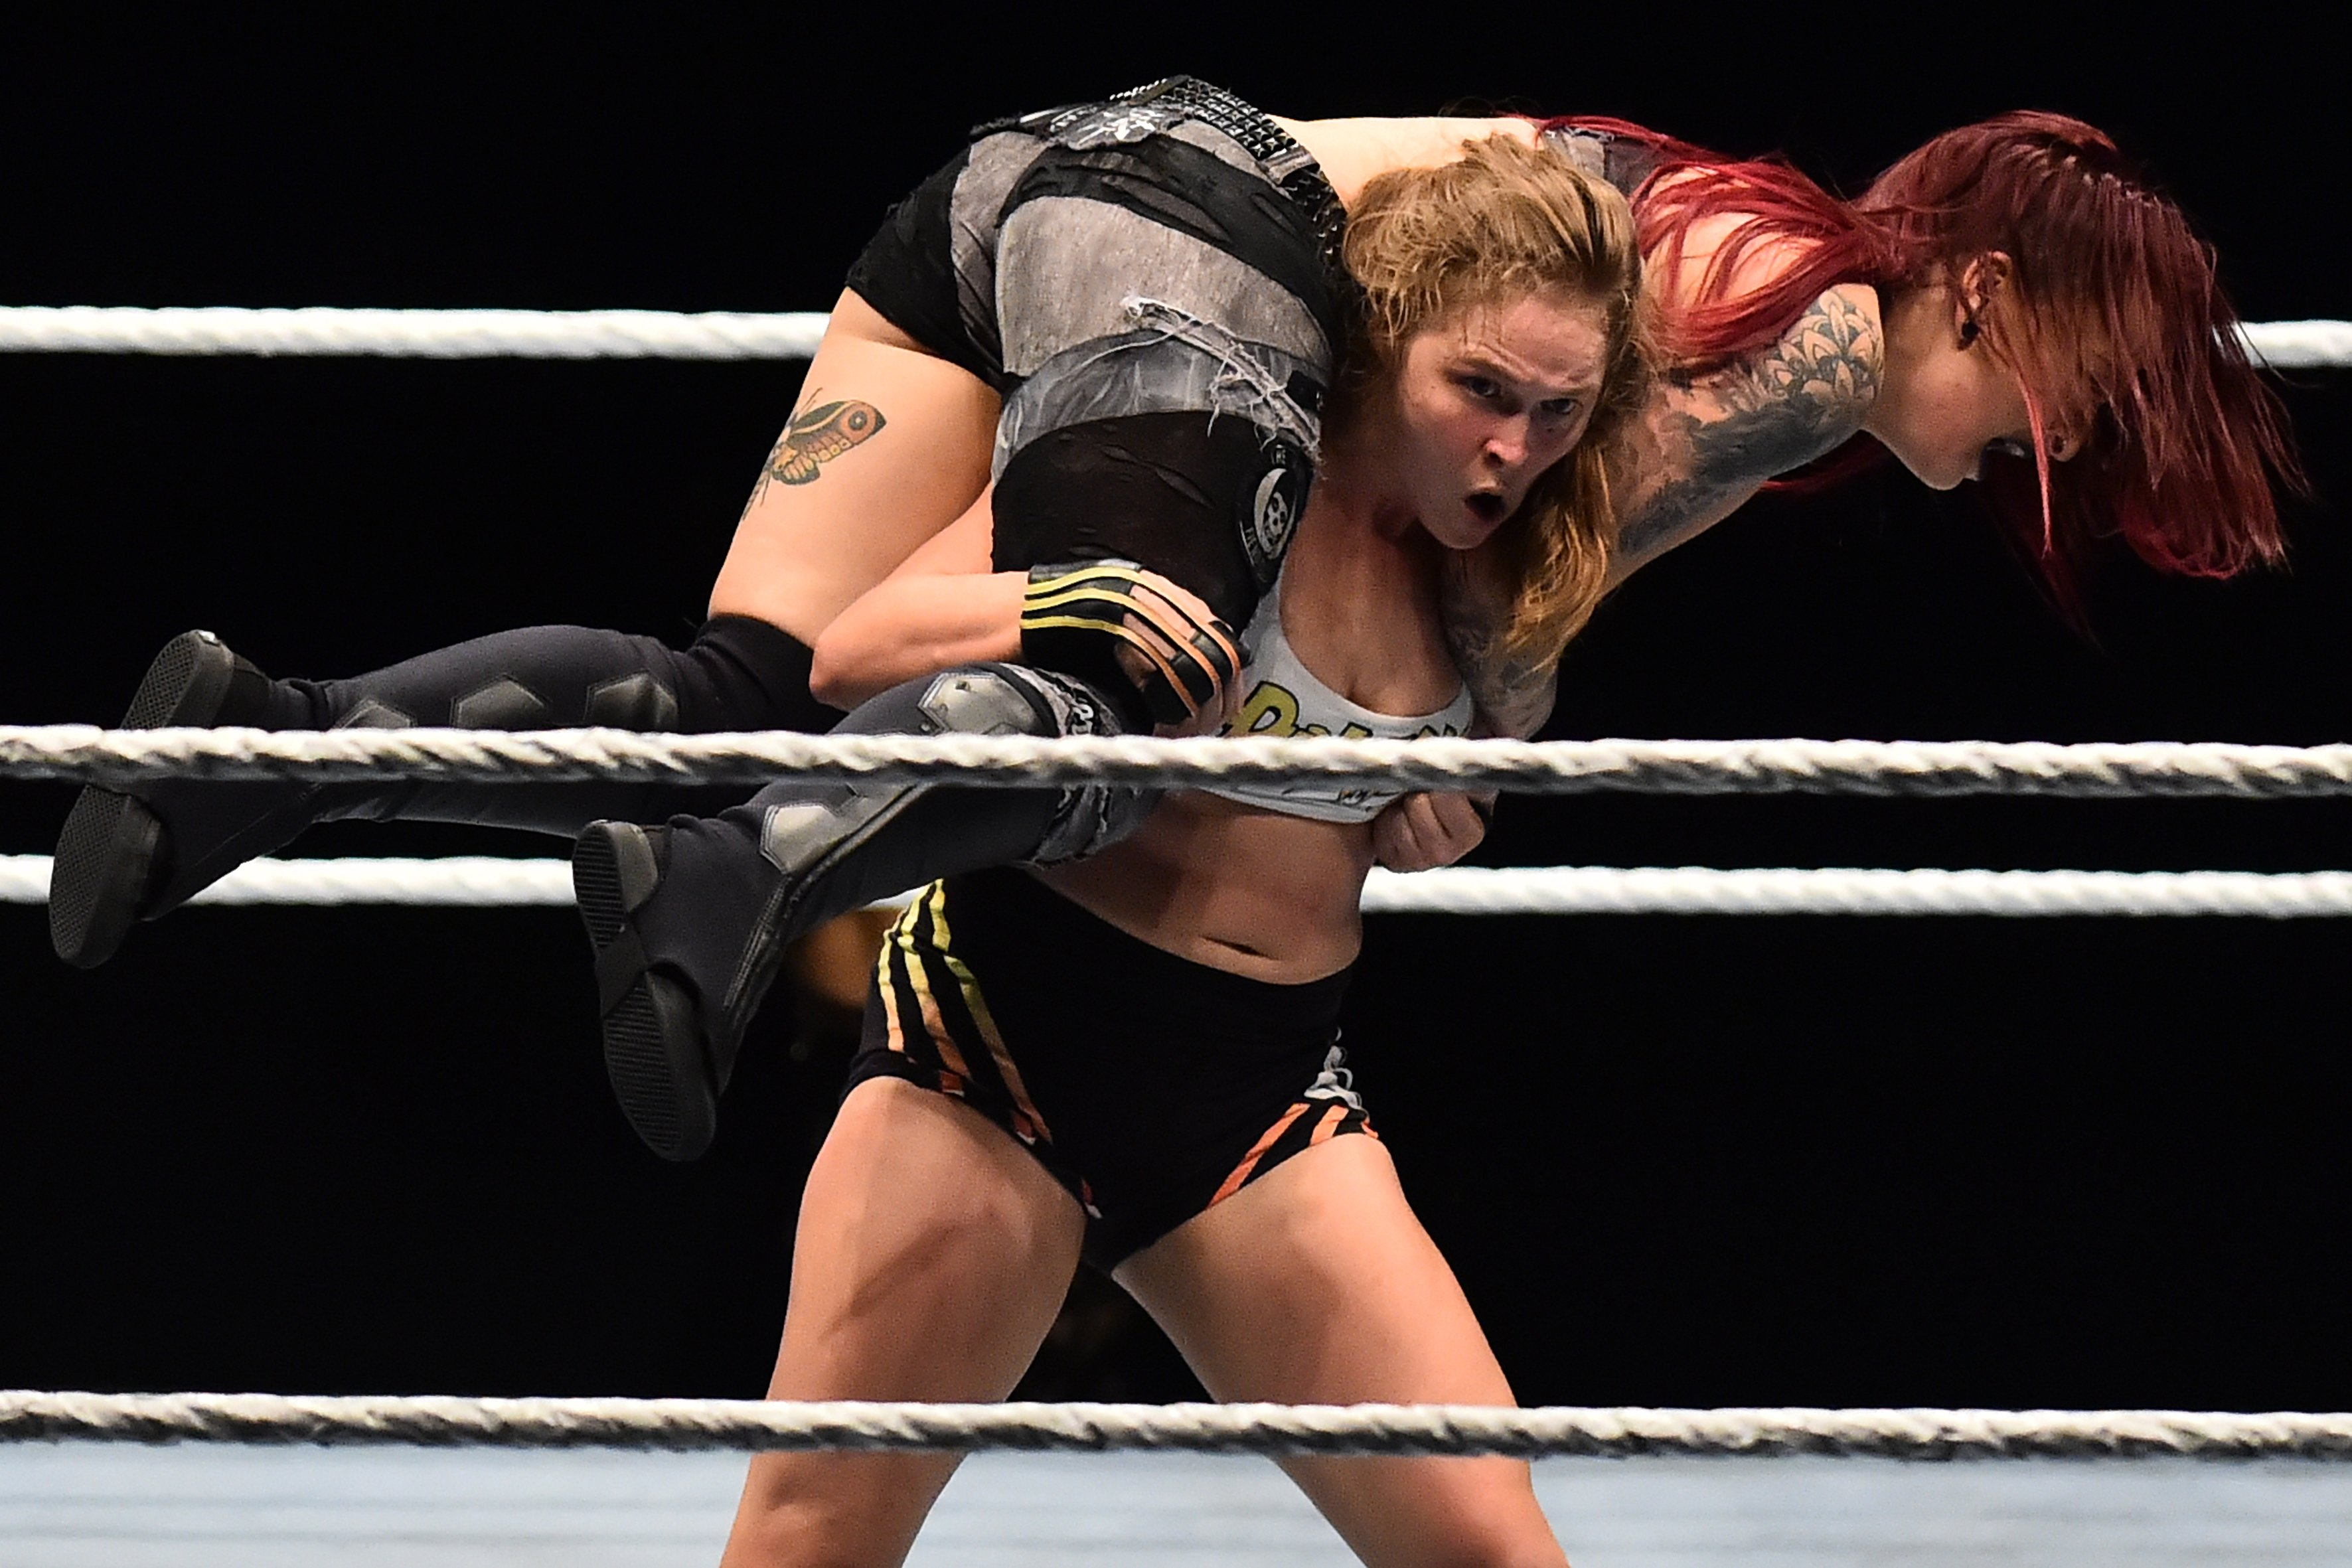 Ronda Rousey says she will not return to full-time WWE participation ahead of ring return